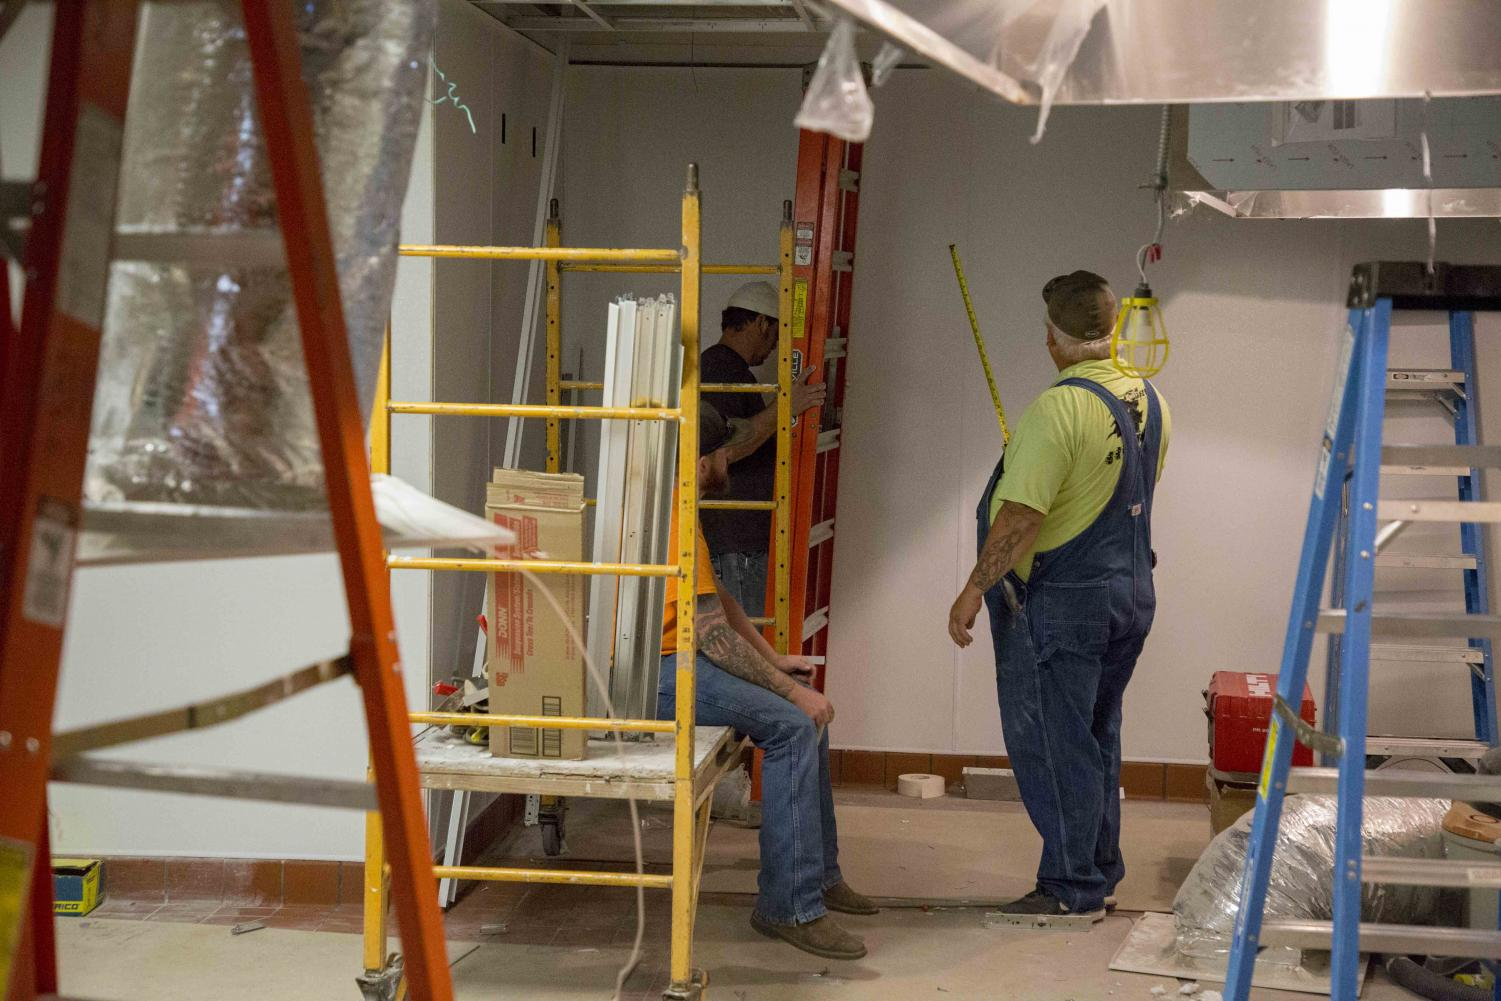 Contract workers work on transforming the former space of Mondo Subs to Freddy's Frozen Custard and Steakburgers. Freddy's is expected to open the first day of the fall semester, Aug. 20.